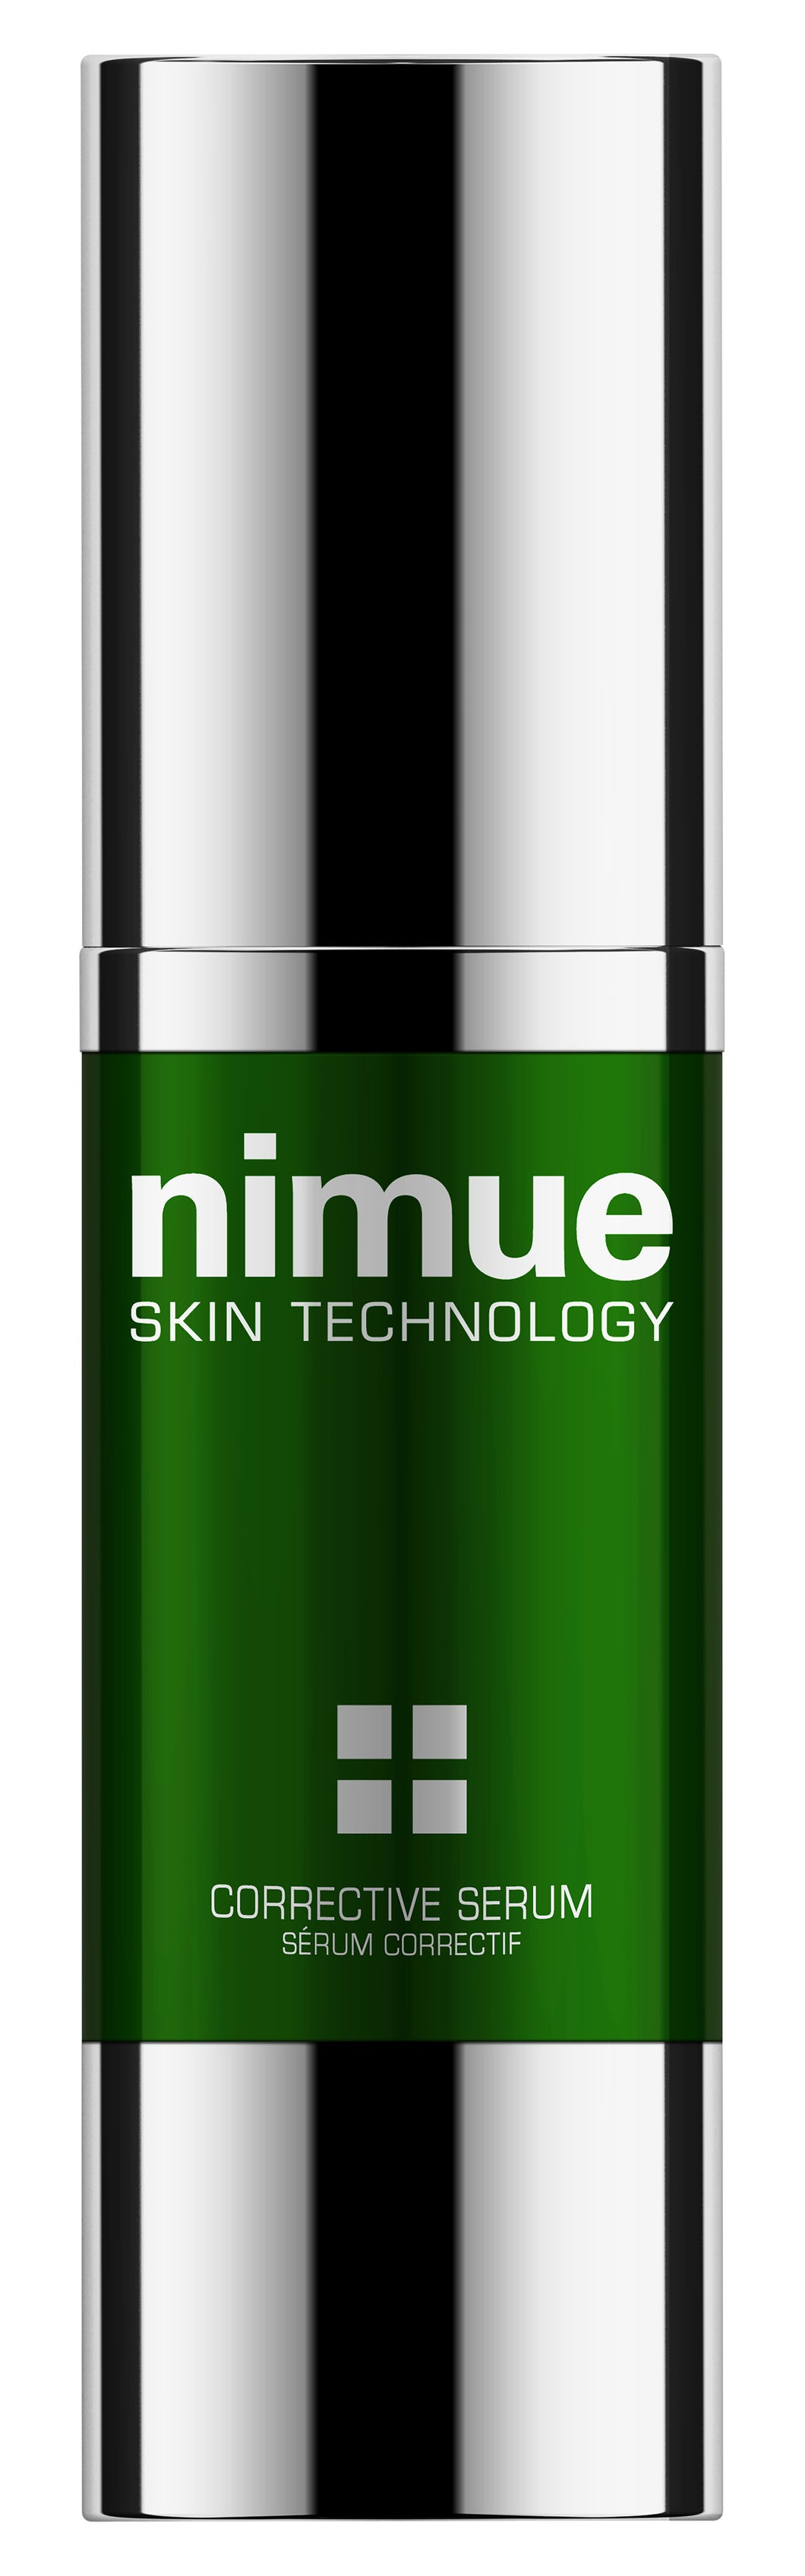 Nimue Corrective Serum - 30ml